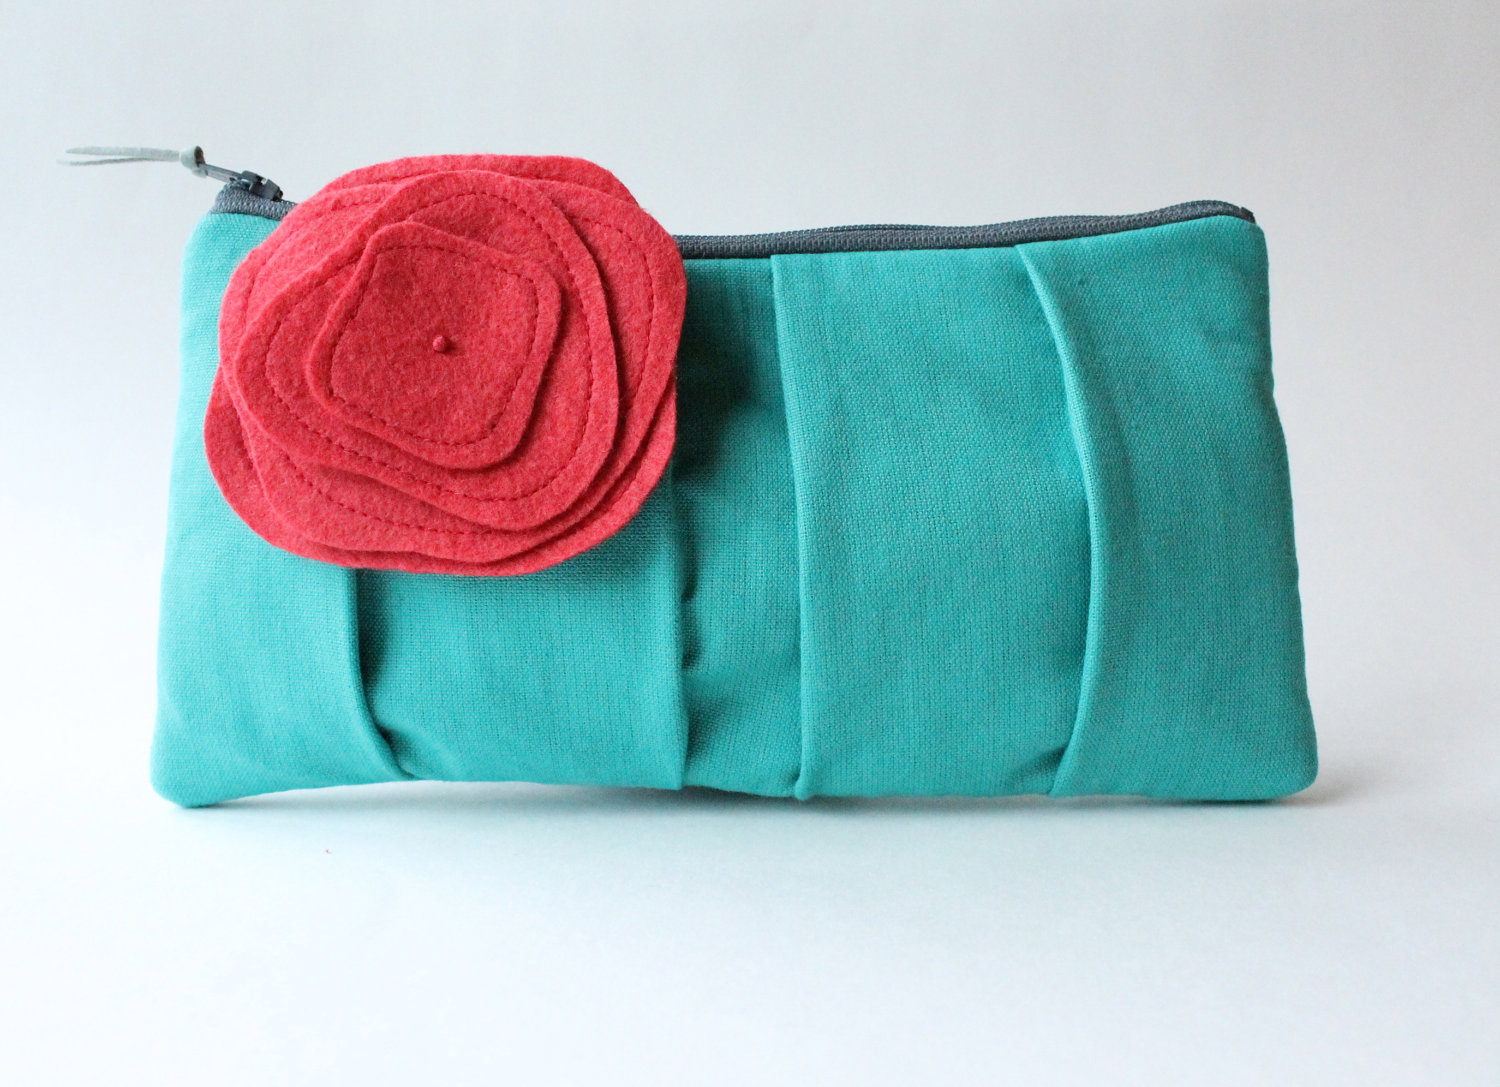 teal clutch purse with coral brooch pin flower | 7 Spring Wedding Clutches Your Girls Will Love via emmalinebride.com